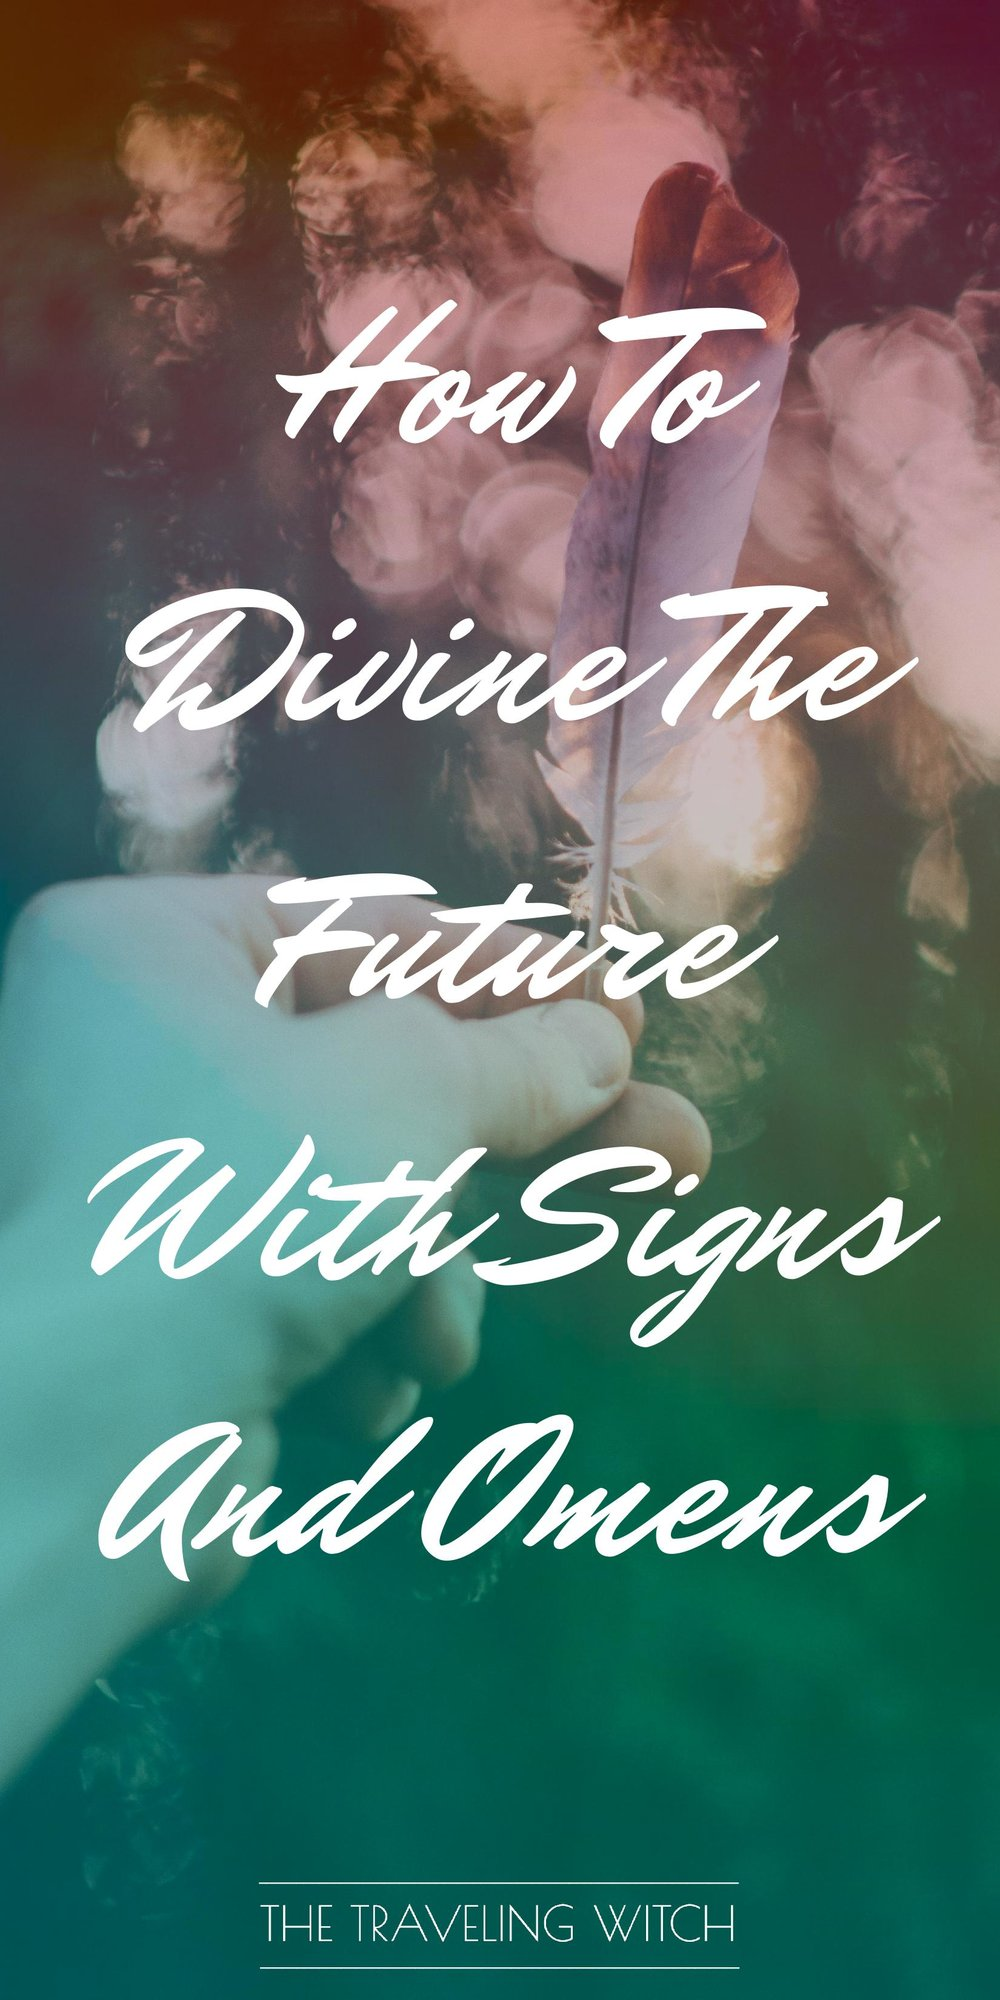 How To Divine The Future With Signs And Omens // Witchcraft // Magic // The Traveling Witch